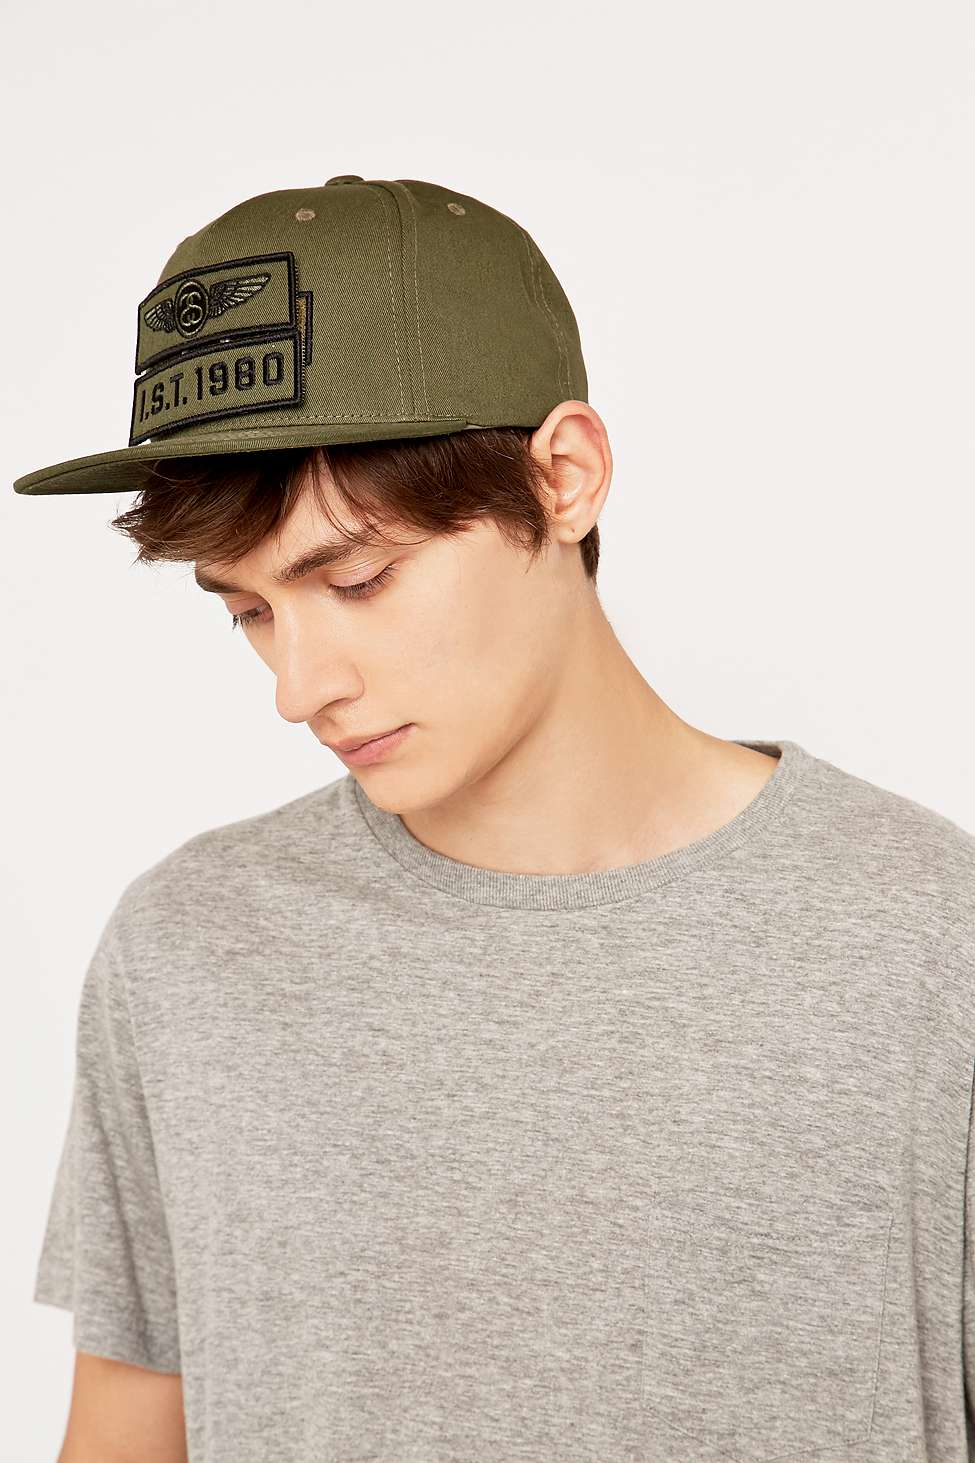 bf00271f1d0 Stussy Patches Strap-back Cap in Green for Men - Lyst